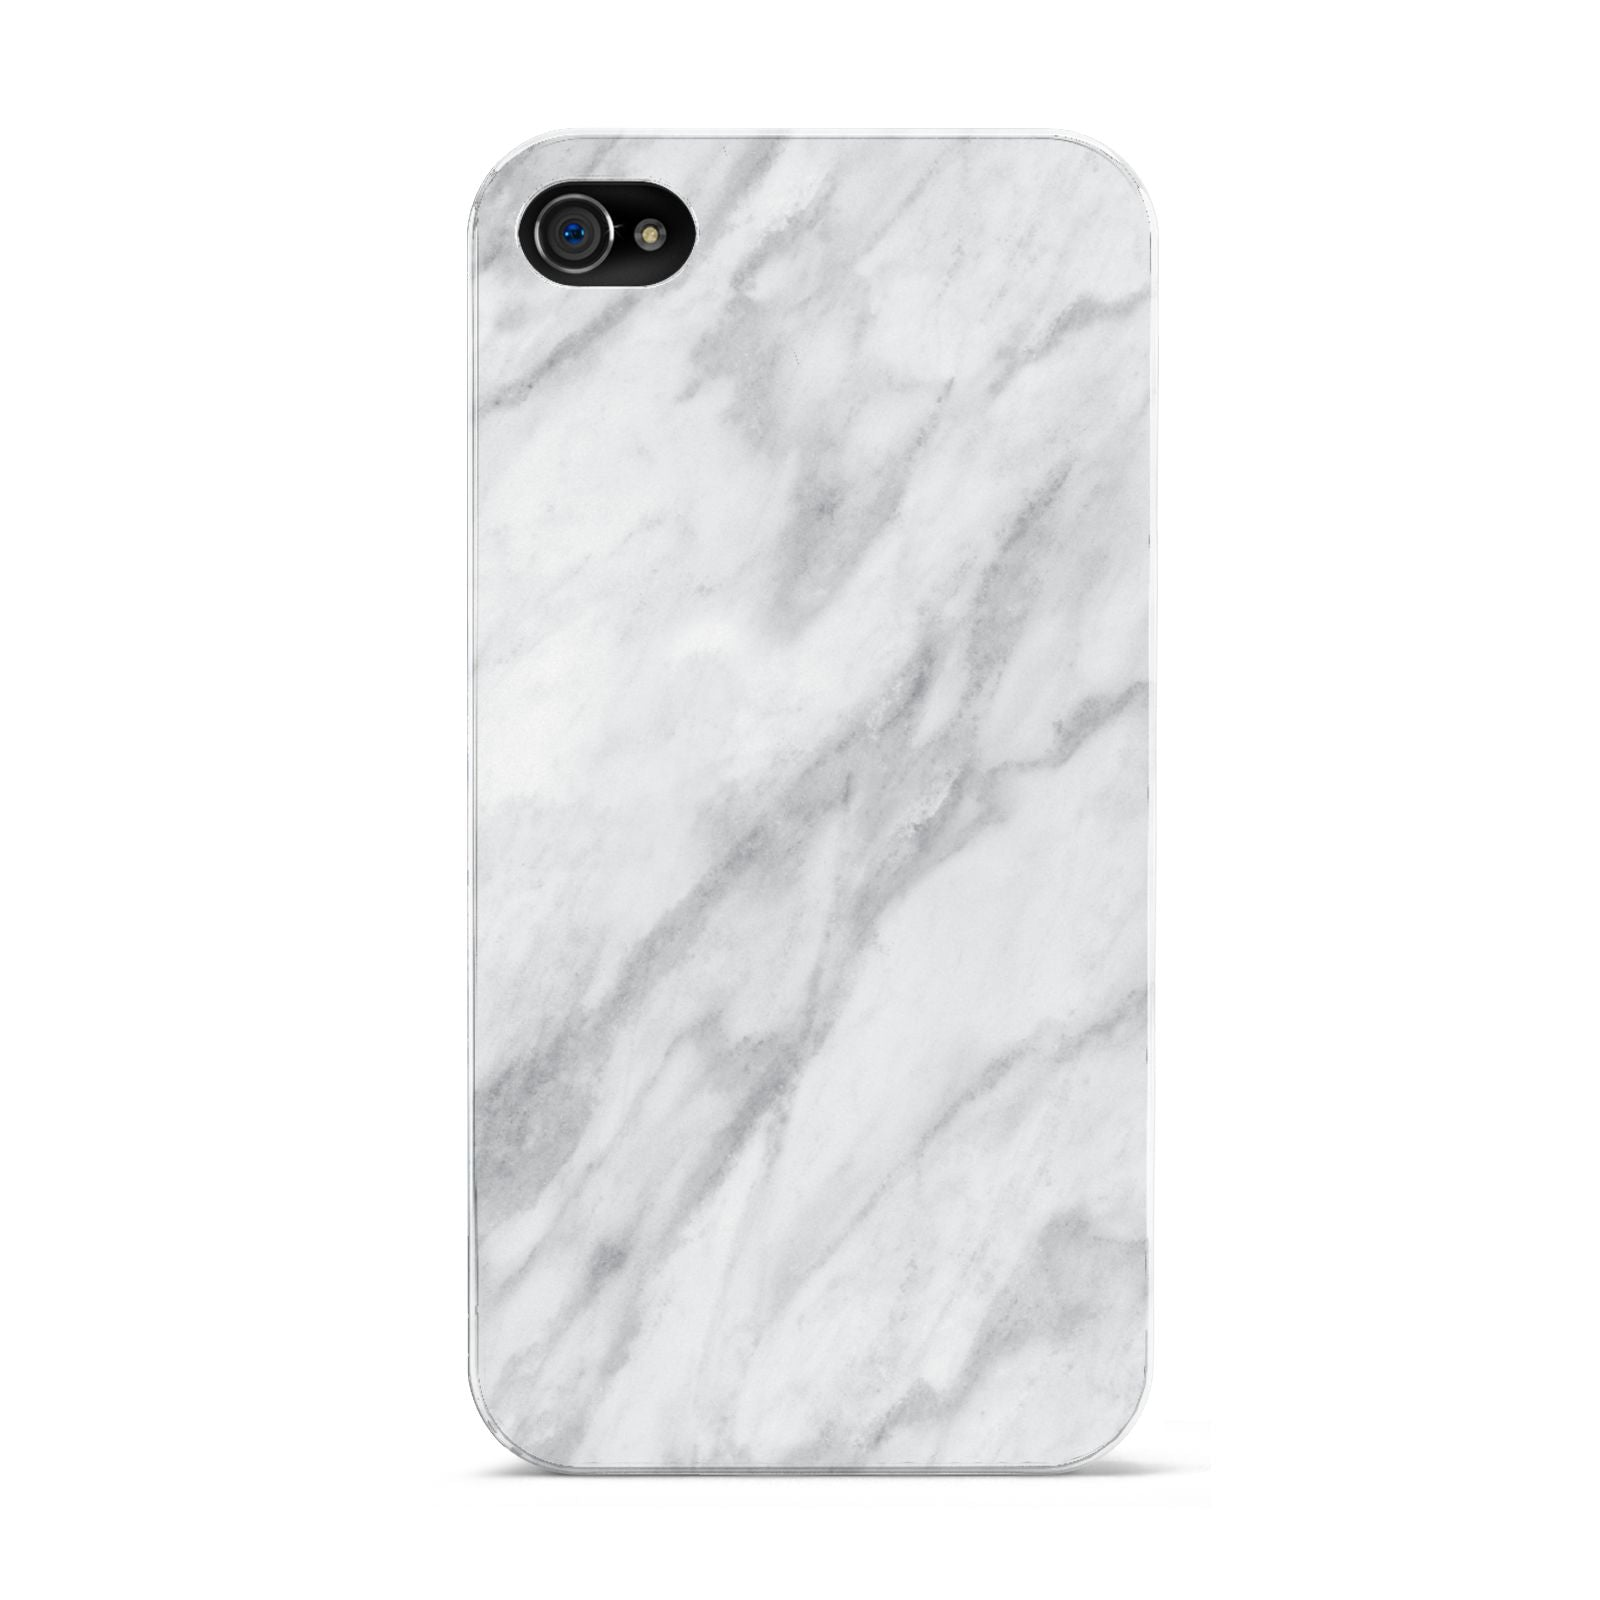 Faux Marble Effect Italian Apple iPhone 4s Case